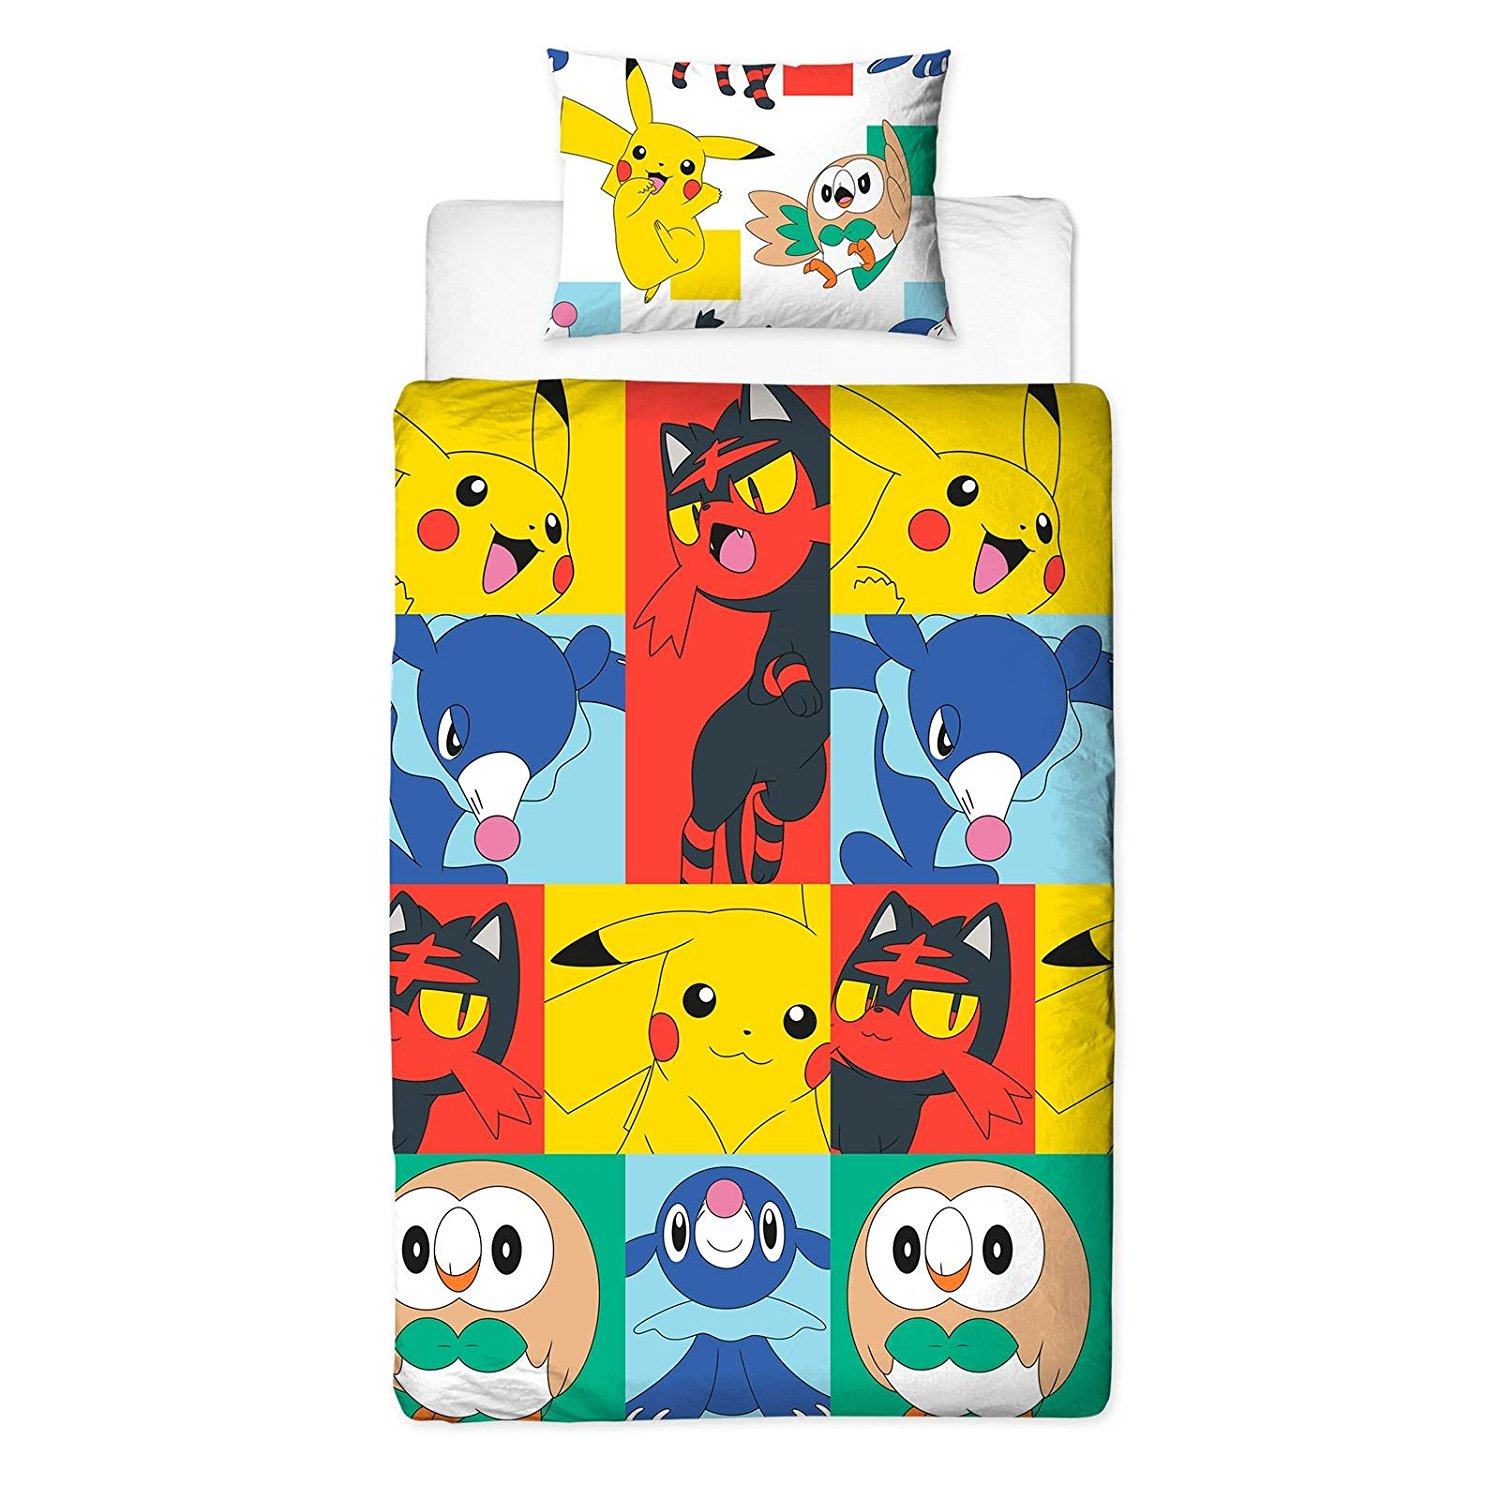 Pokemon 'Newbies' Reversible Rotary Single Bed Duvet Quilt Cover Set